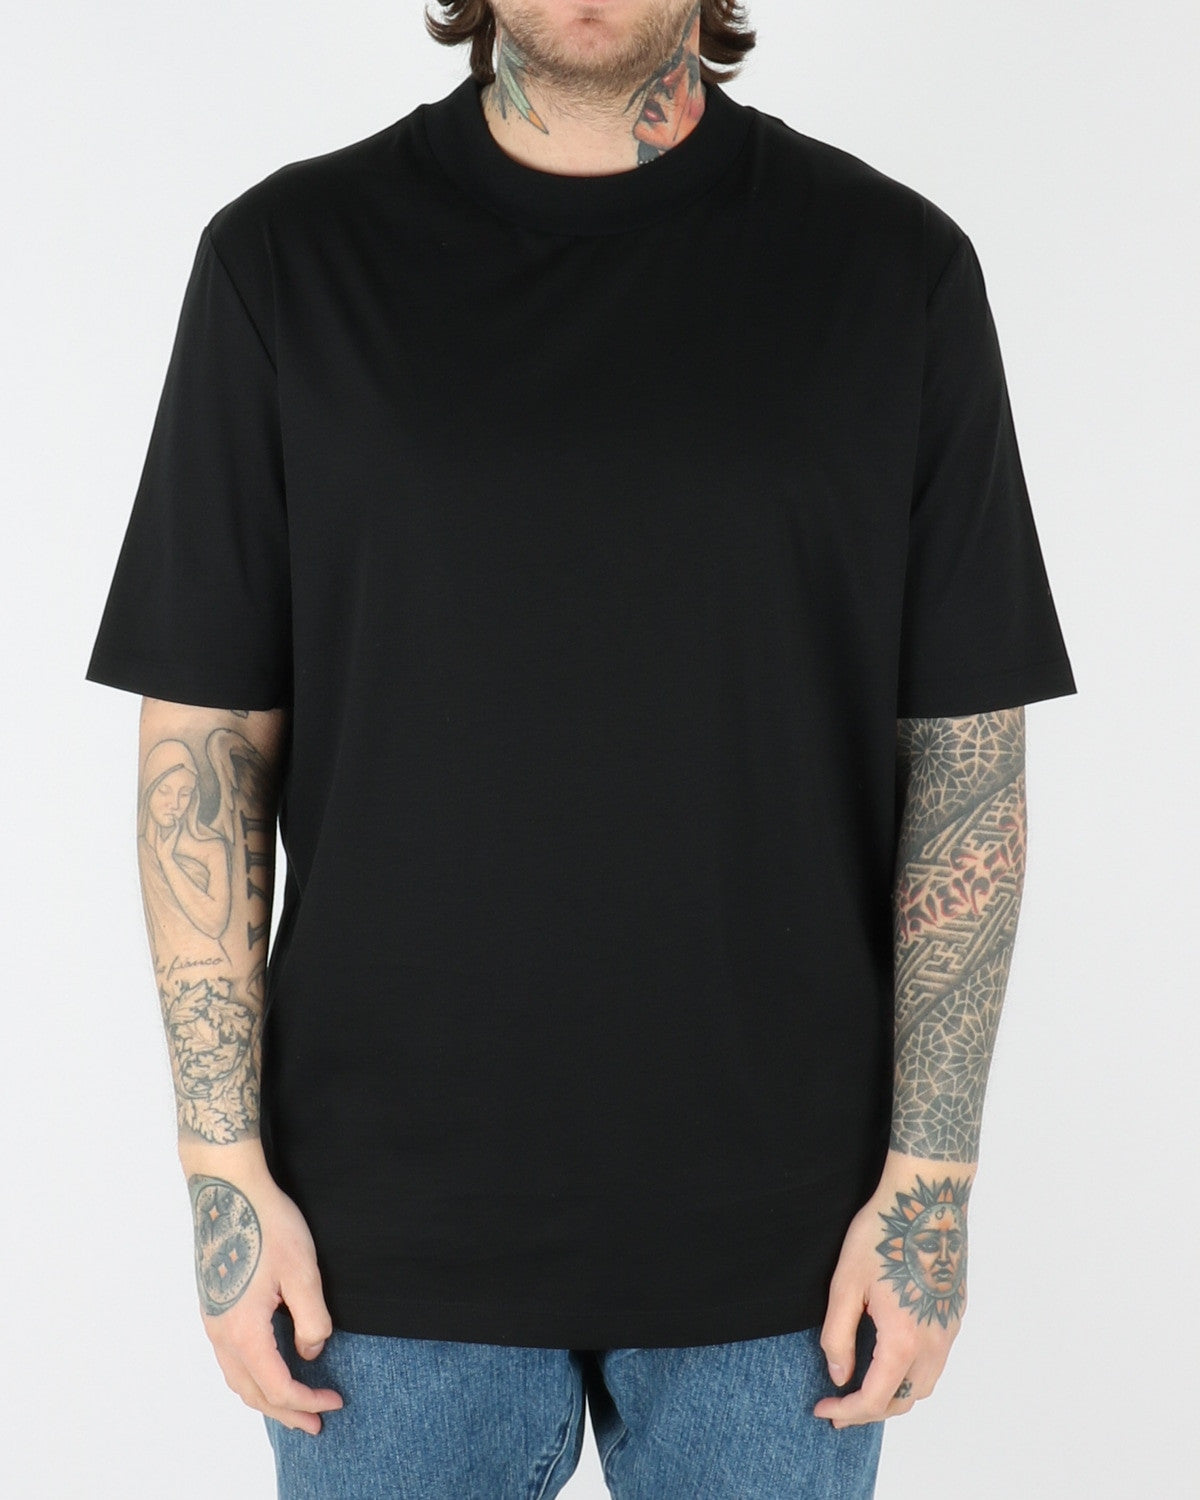 whyred_adham t-shirt_black_view_1_2